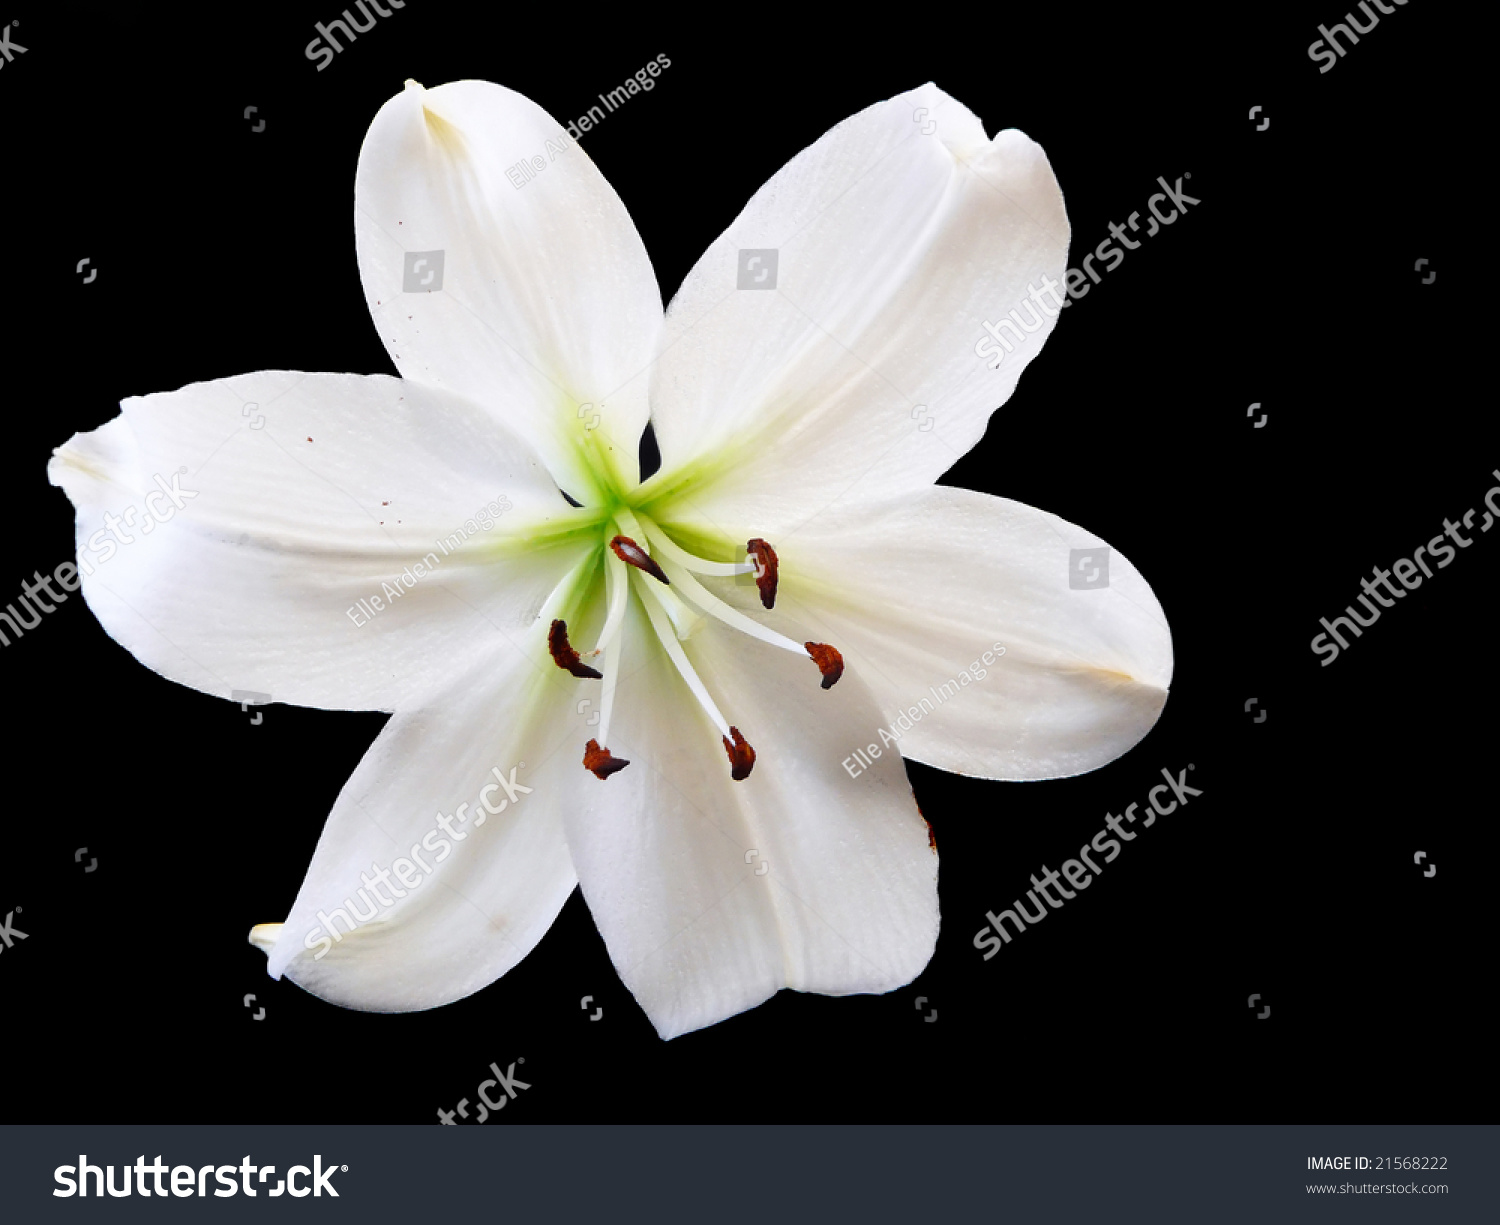 Flower single white easter lily on stock photo royalty free flower a single white easter lily on a black background mightylinksfo